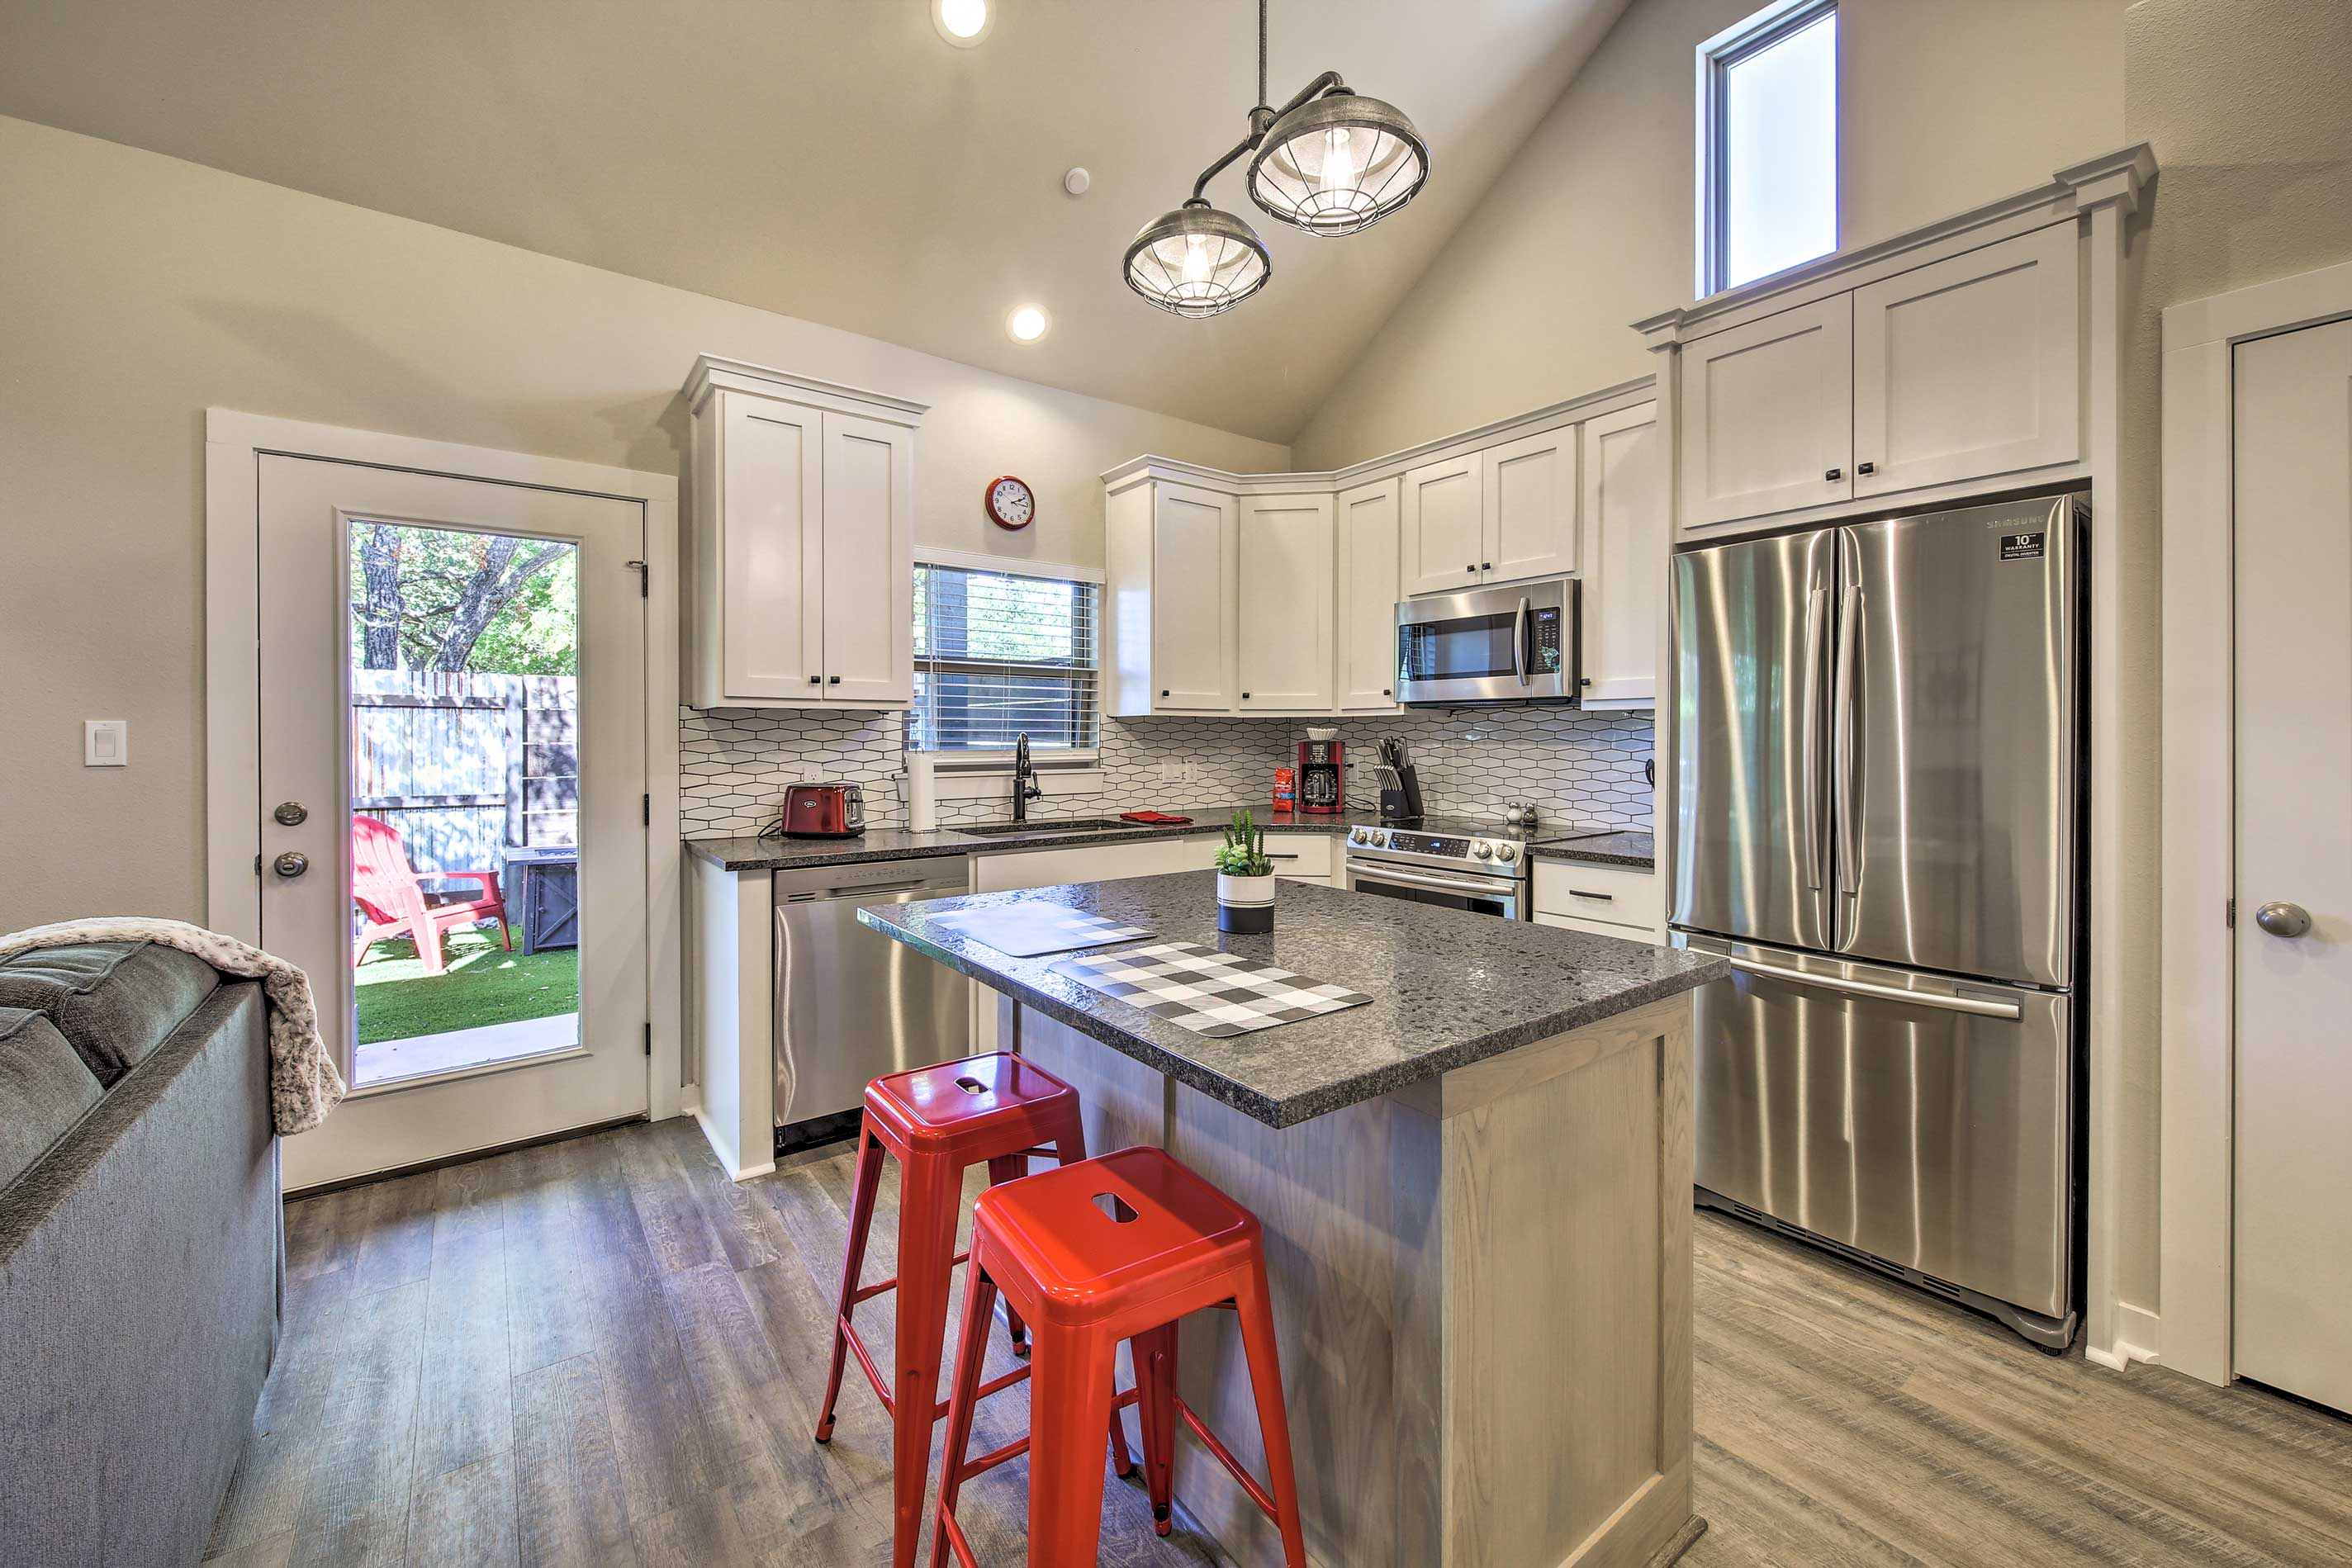 The kitchen comes complete with stainless steel appliances and a center island.